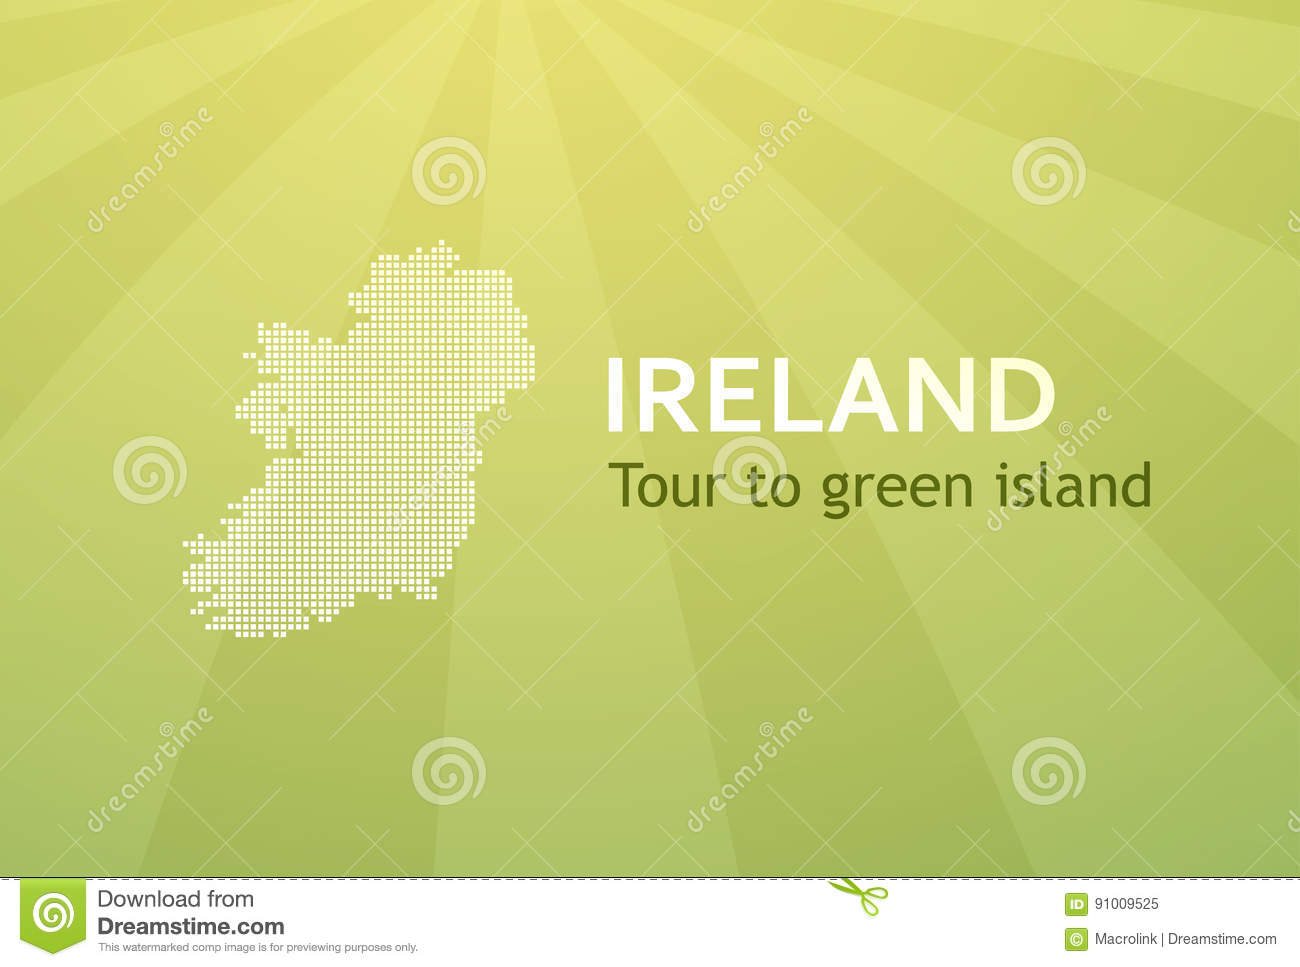 Tour to ireland business card for travel company stock vector tour to ireland business card for travel company royalty free vector reheart Image collections